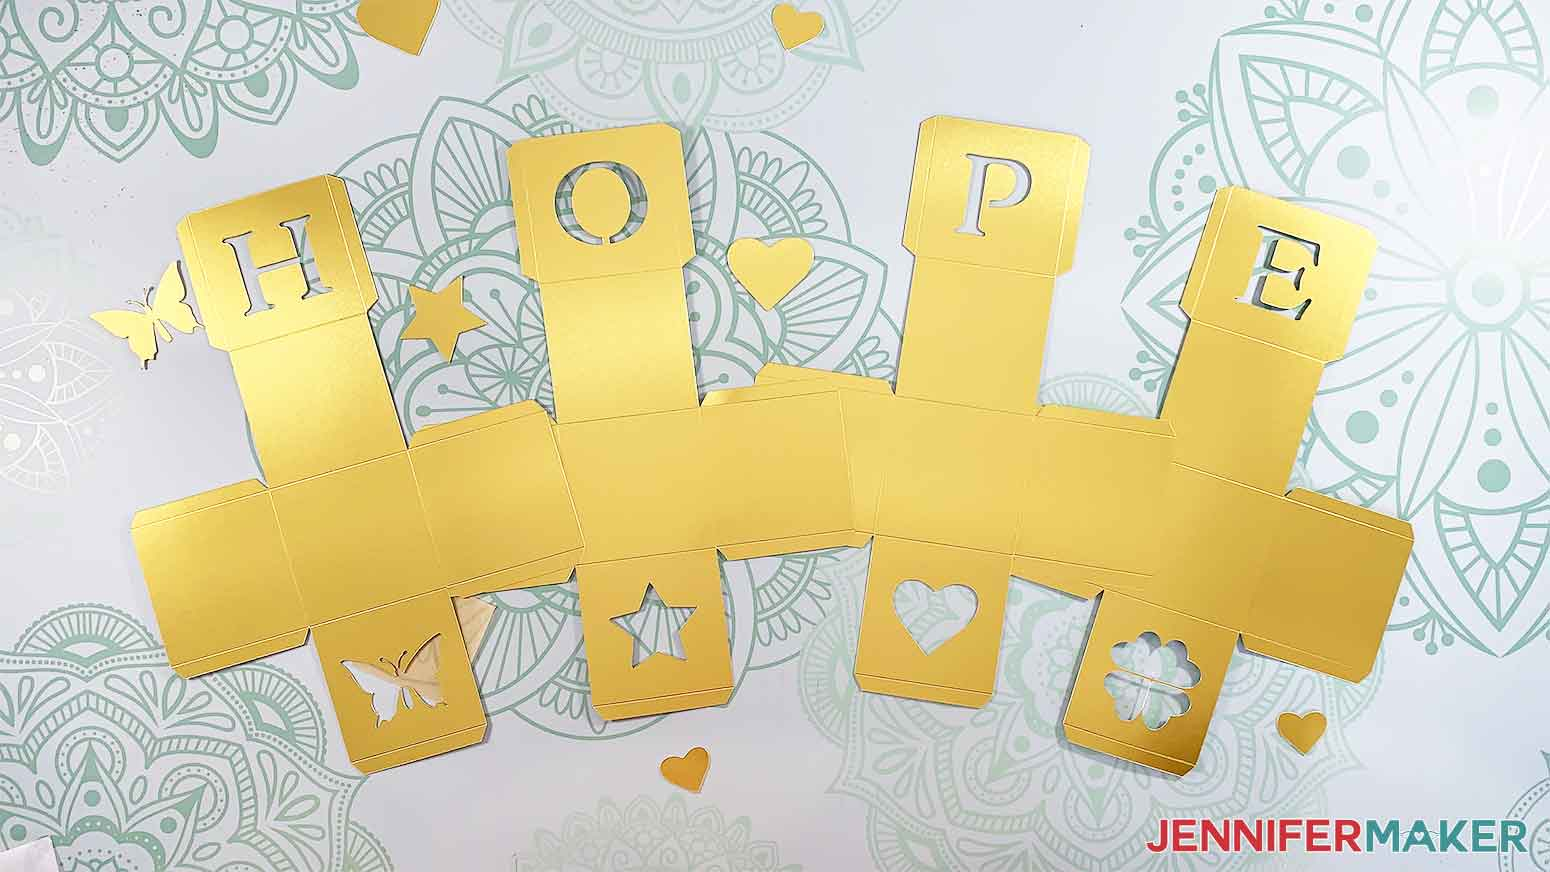 HOPE-Light-Up-Letter-Blocks-JenniferMaker-Cutout-Blocks